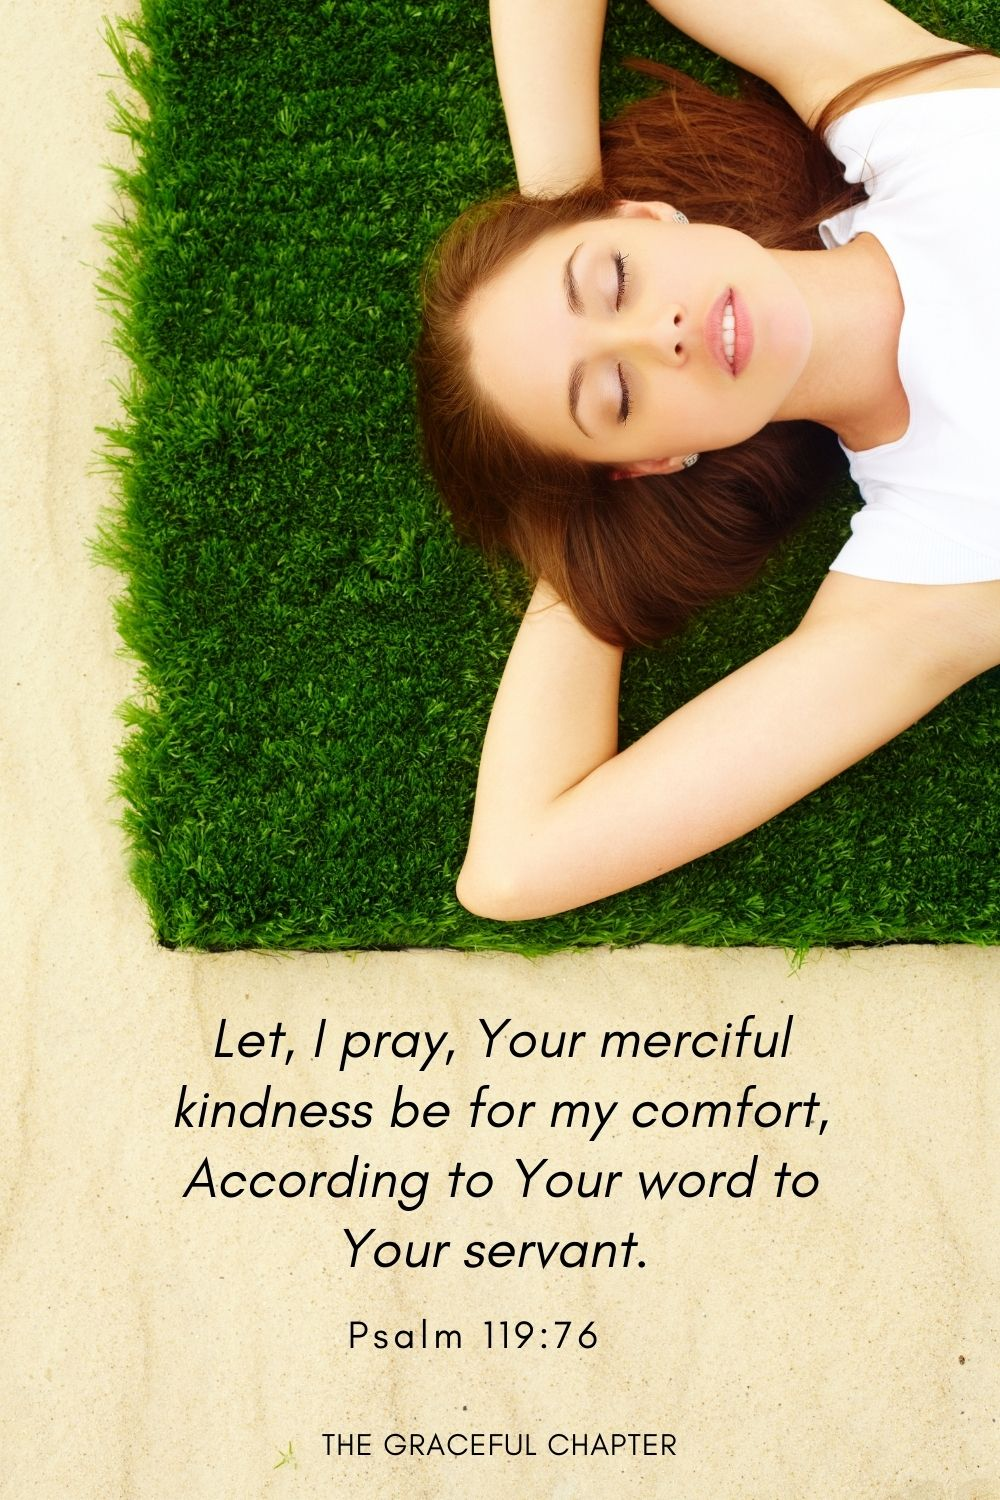 Psalm 119:76 Let, I pray, Your merciful kindness be for my comfort, According to Your word to Your servant.